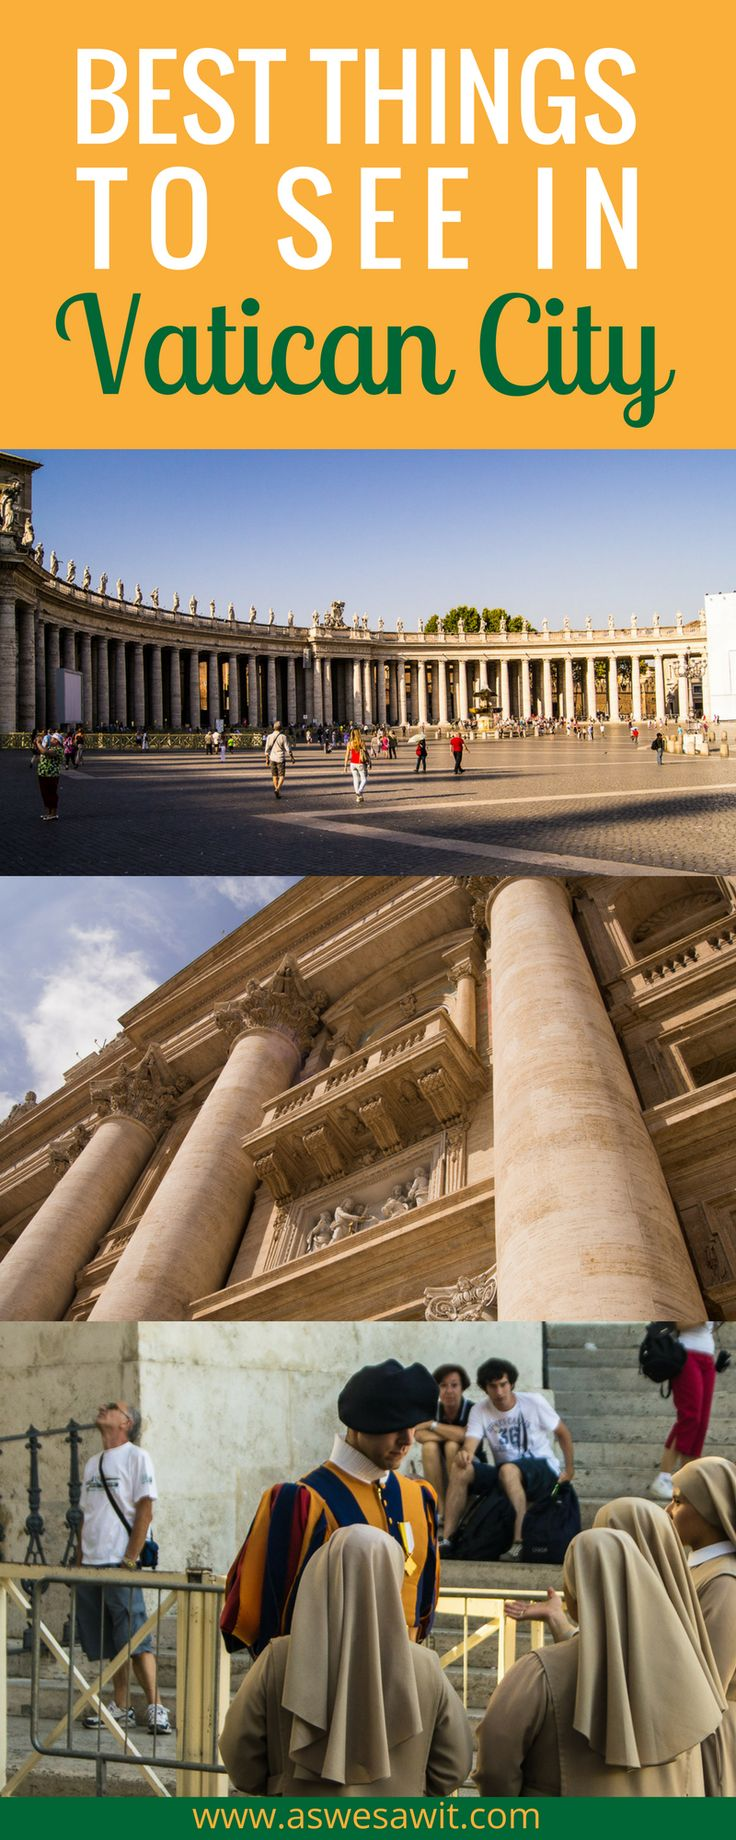 Best things to see in Vatican City in one day. If you are on a tight schedule for your visit to Vatican City and only have one day to spend there, you need to make a plan to get the most of that day. Click through to find out our tips for the best things to see in Vatican City in one day - you will be able to fit in more than you'd think. | As We Saw It #italy #travelitinerary #vaticancity